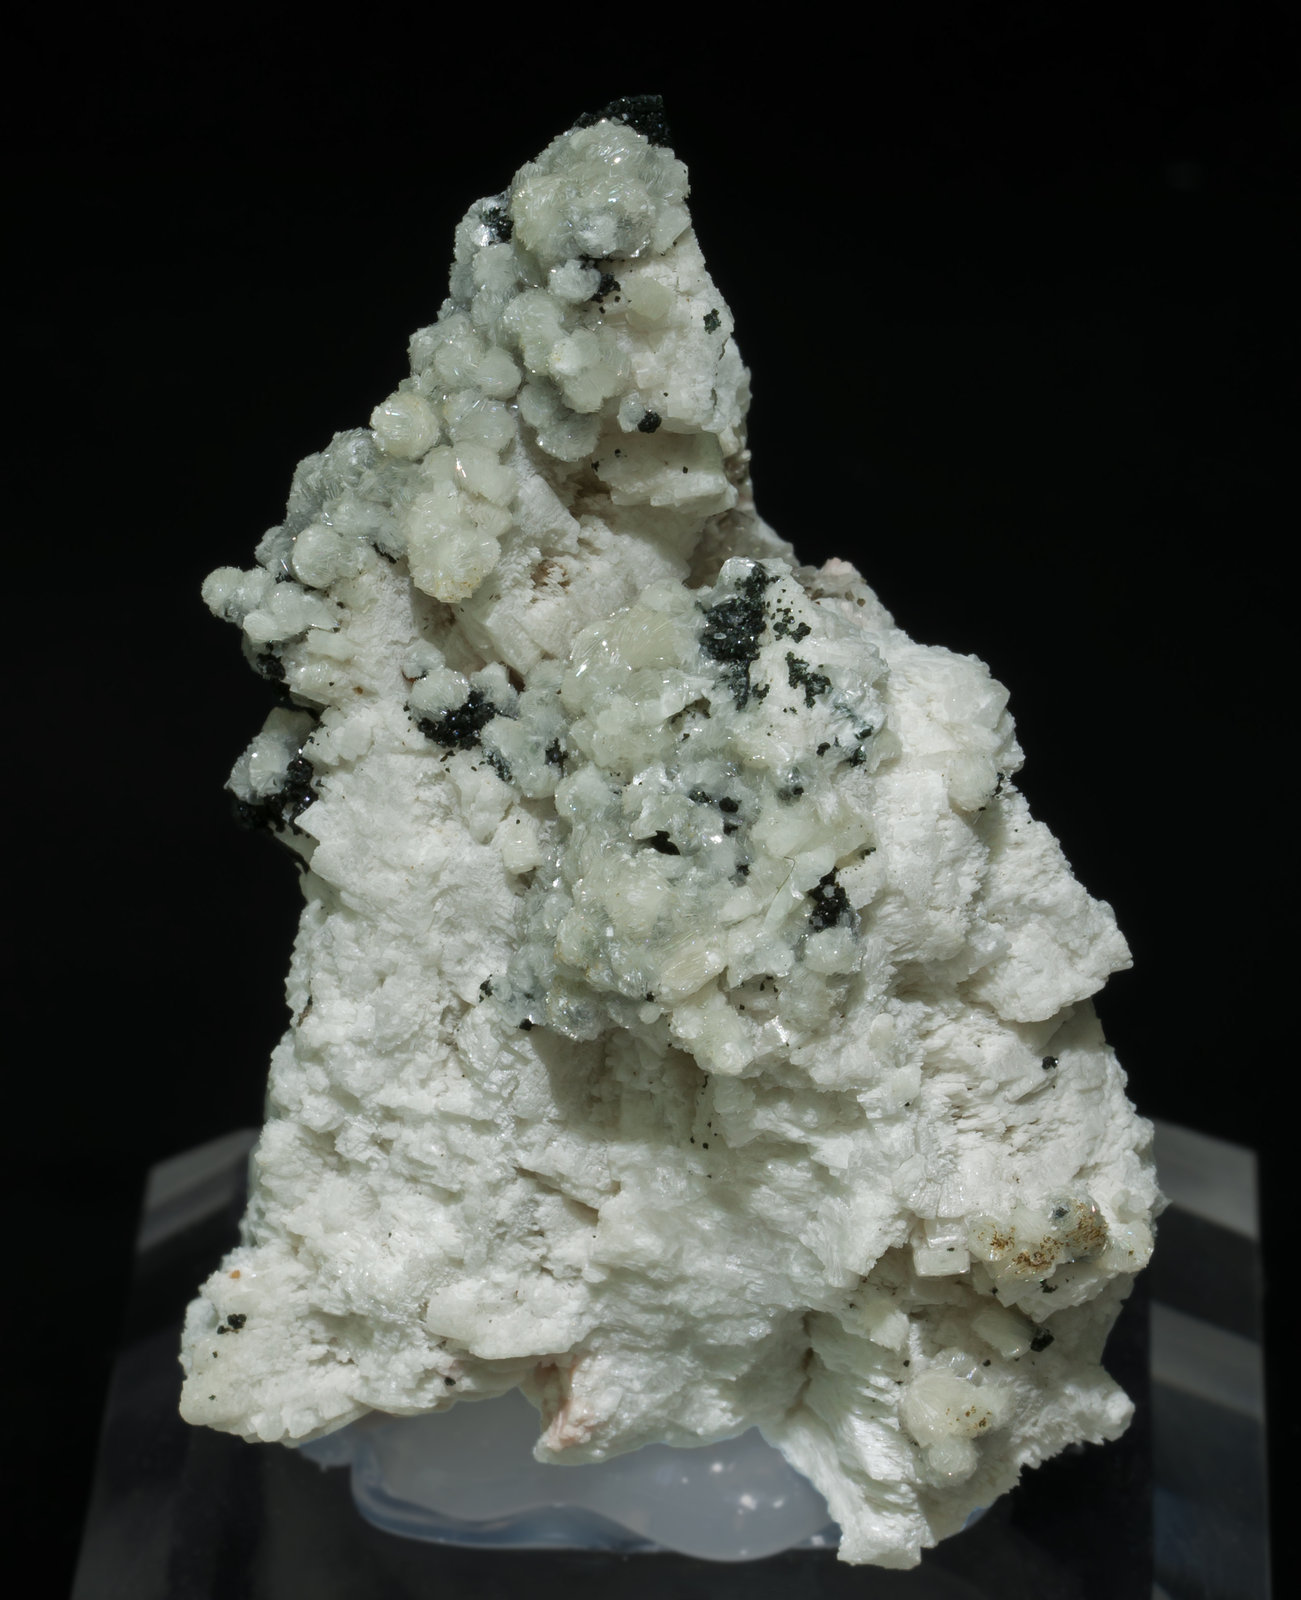 specimens/s_imagesAA7/Bavenite-NV14AA7f.jpg